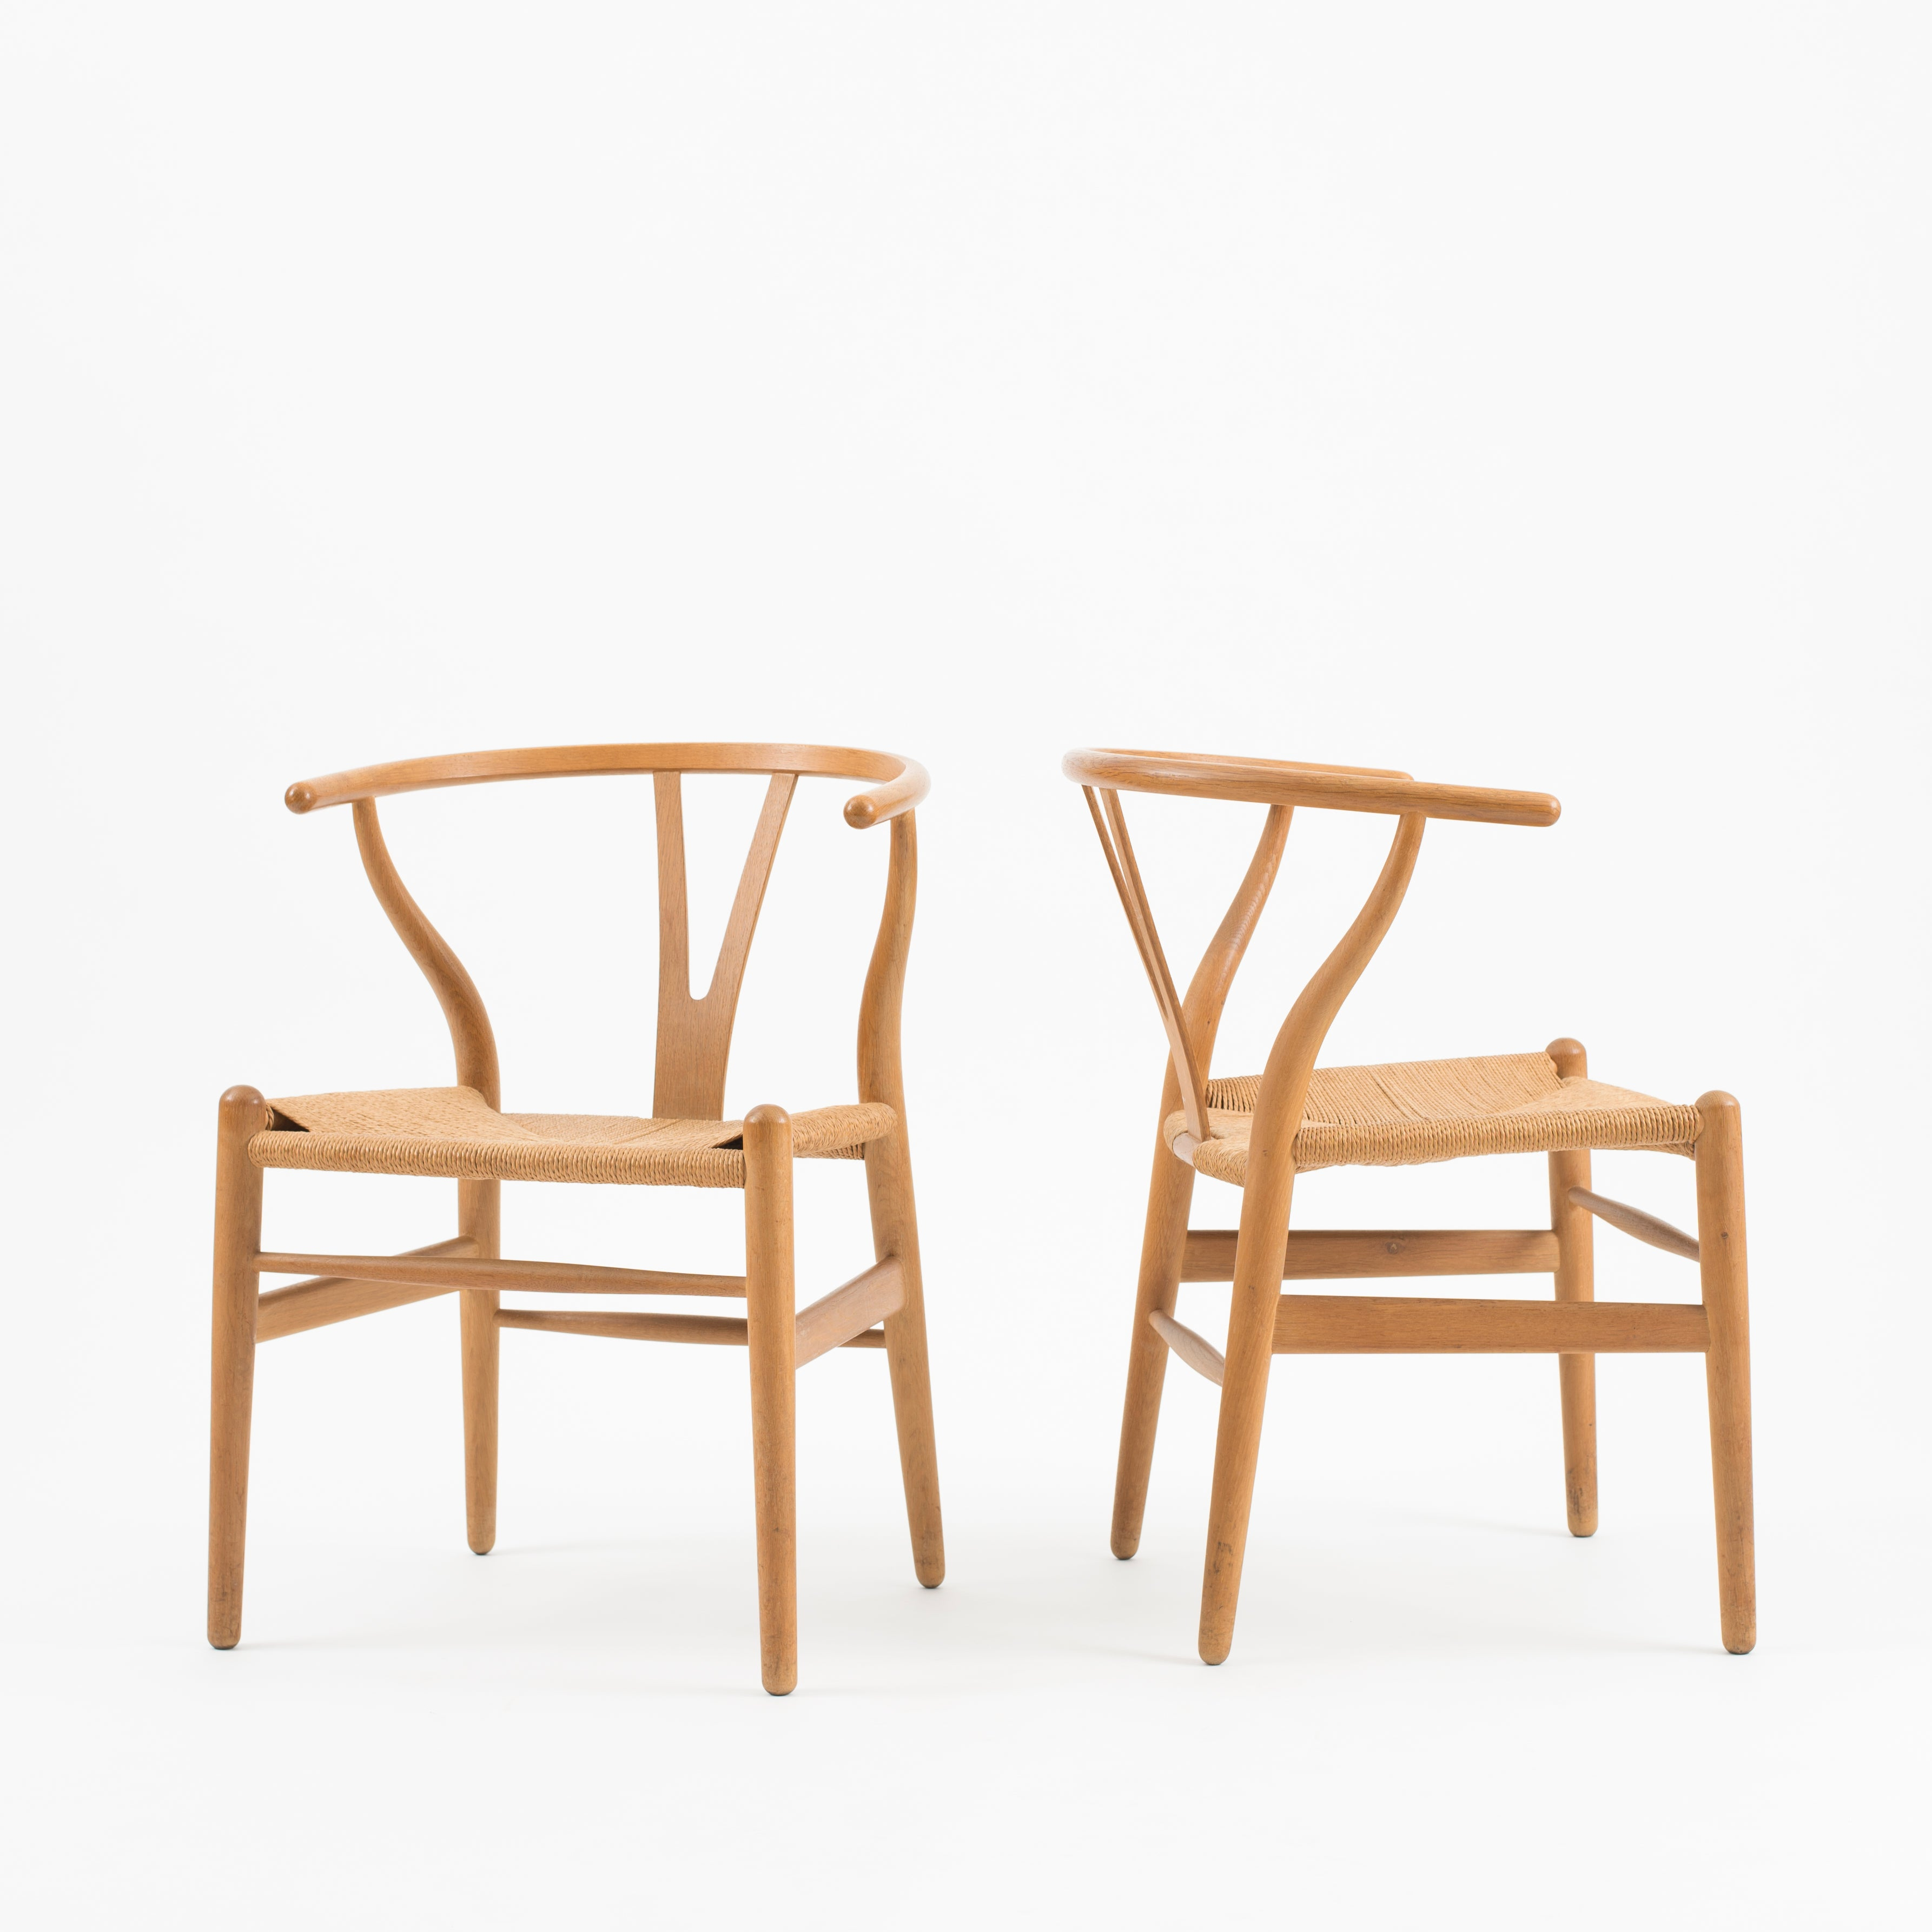 hans j wegner set of four wishbone chairs in oak for carl hansen